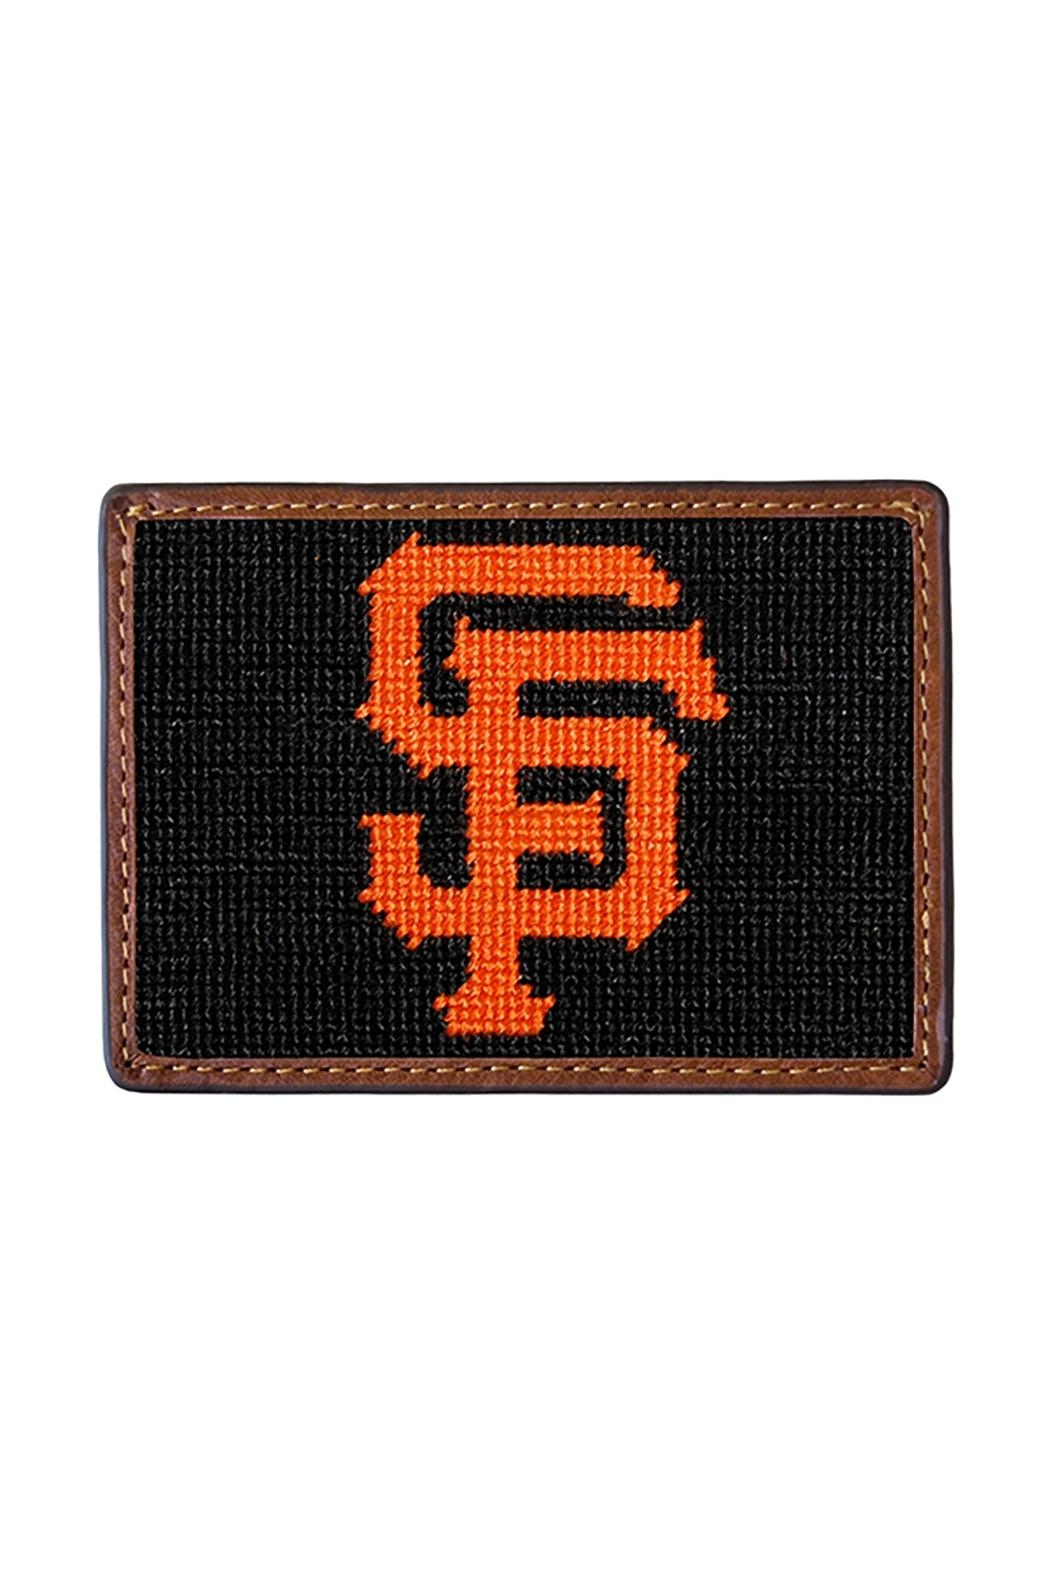 Smathers and Branson Giants 1/2 Wallet - Main Image